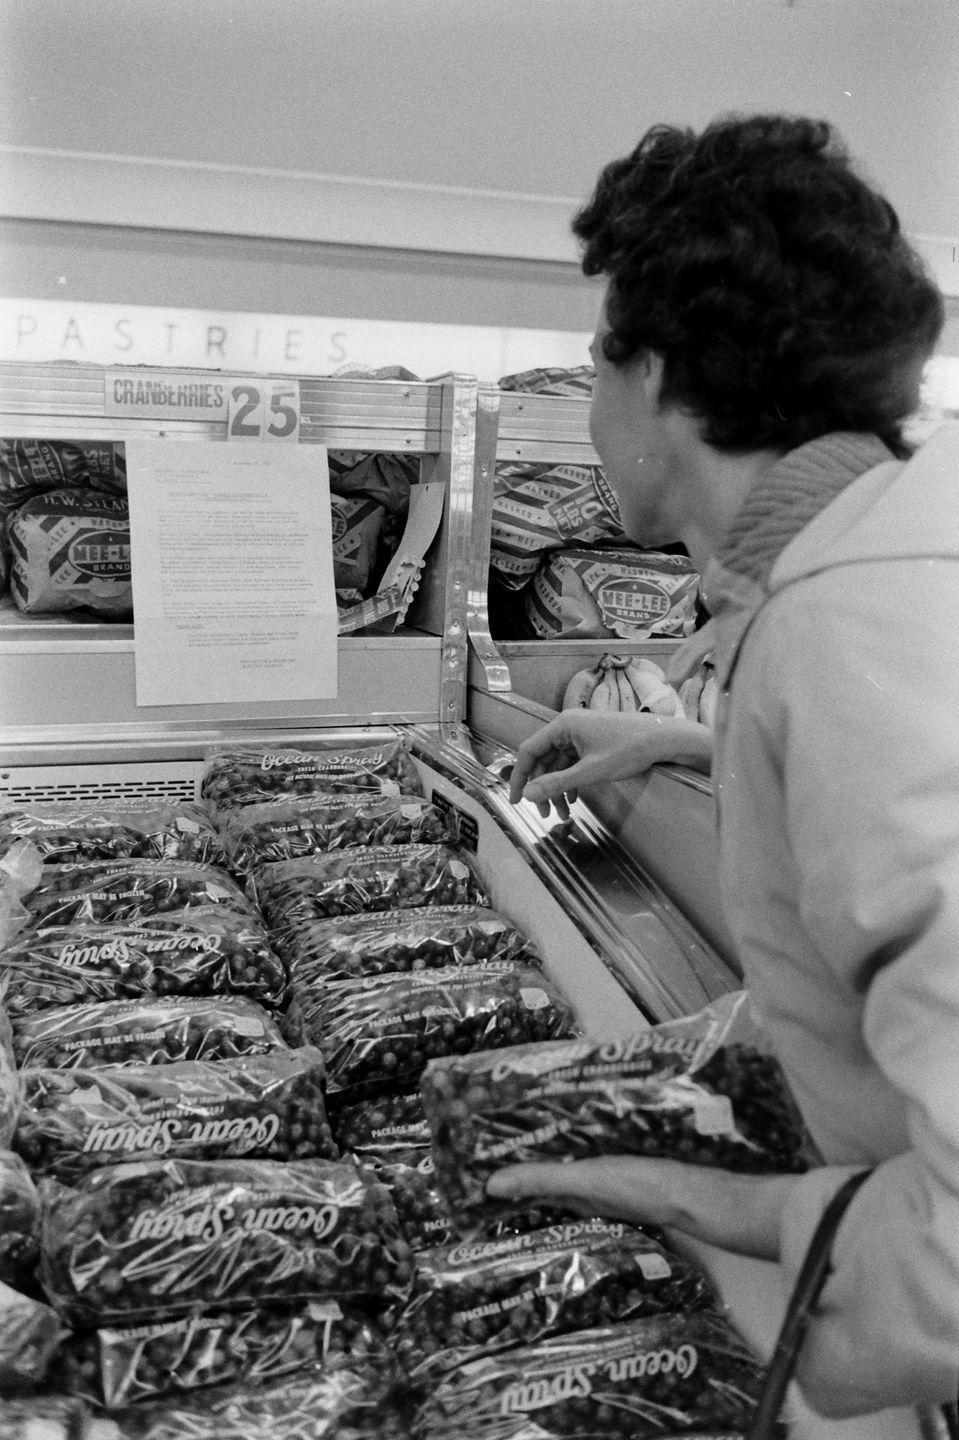 "<p>The invention of plastic film also gave rise to the trend of pre-wrapped vegetables. If you believe <a href=""https://clickamericana.com/topics/culture-and-lifestyle/scenes-from-grocery-stores-supermarkets-of-yesteryear"" rel=""nofollow noopener"" target=""_blank"" data-ylk=""slk:this 1953 advert"" class=""link rapid-noclick-resp"">this 1953 advert</a>, it's a better way to buy lettuce.</p>"